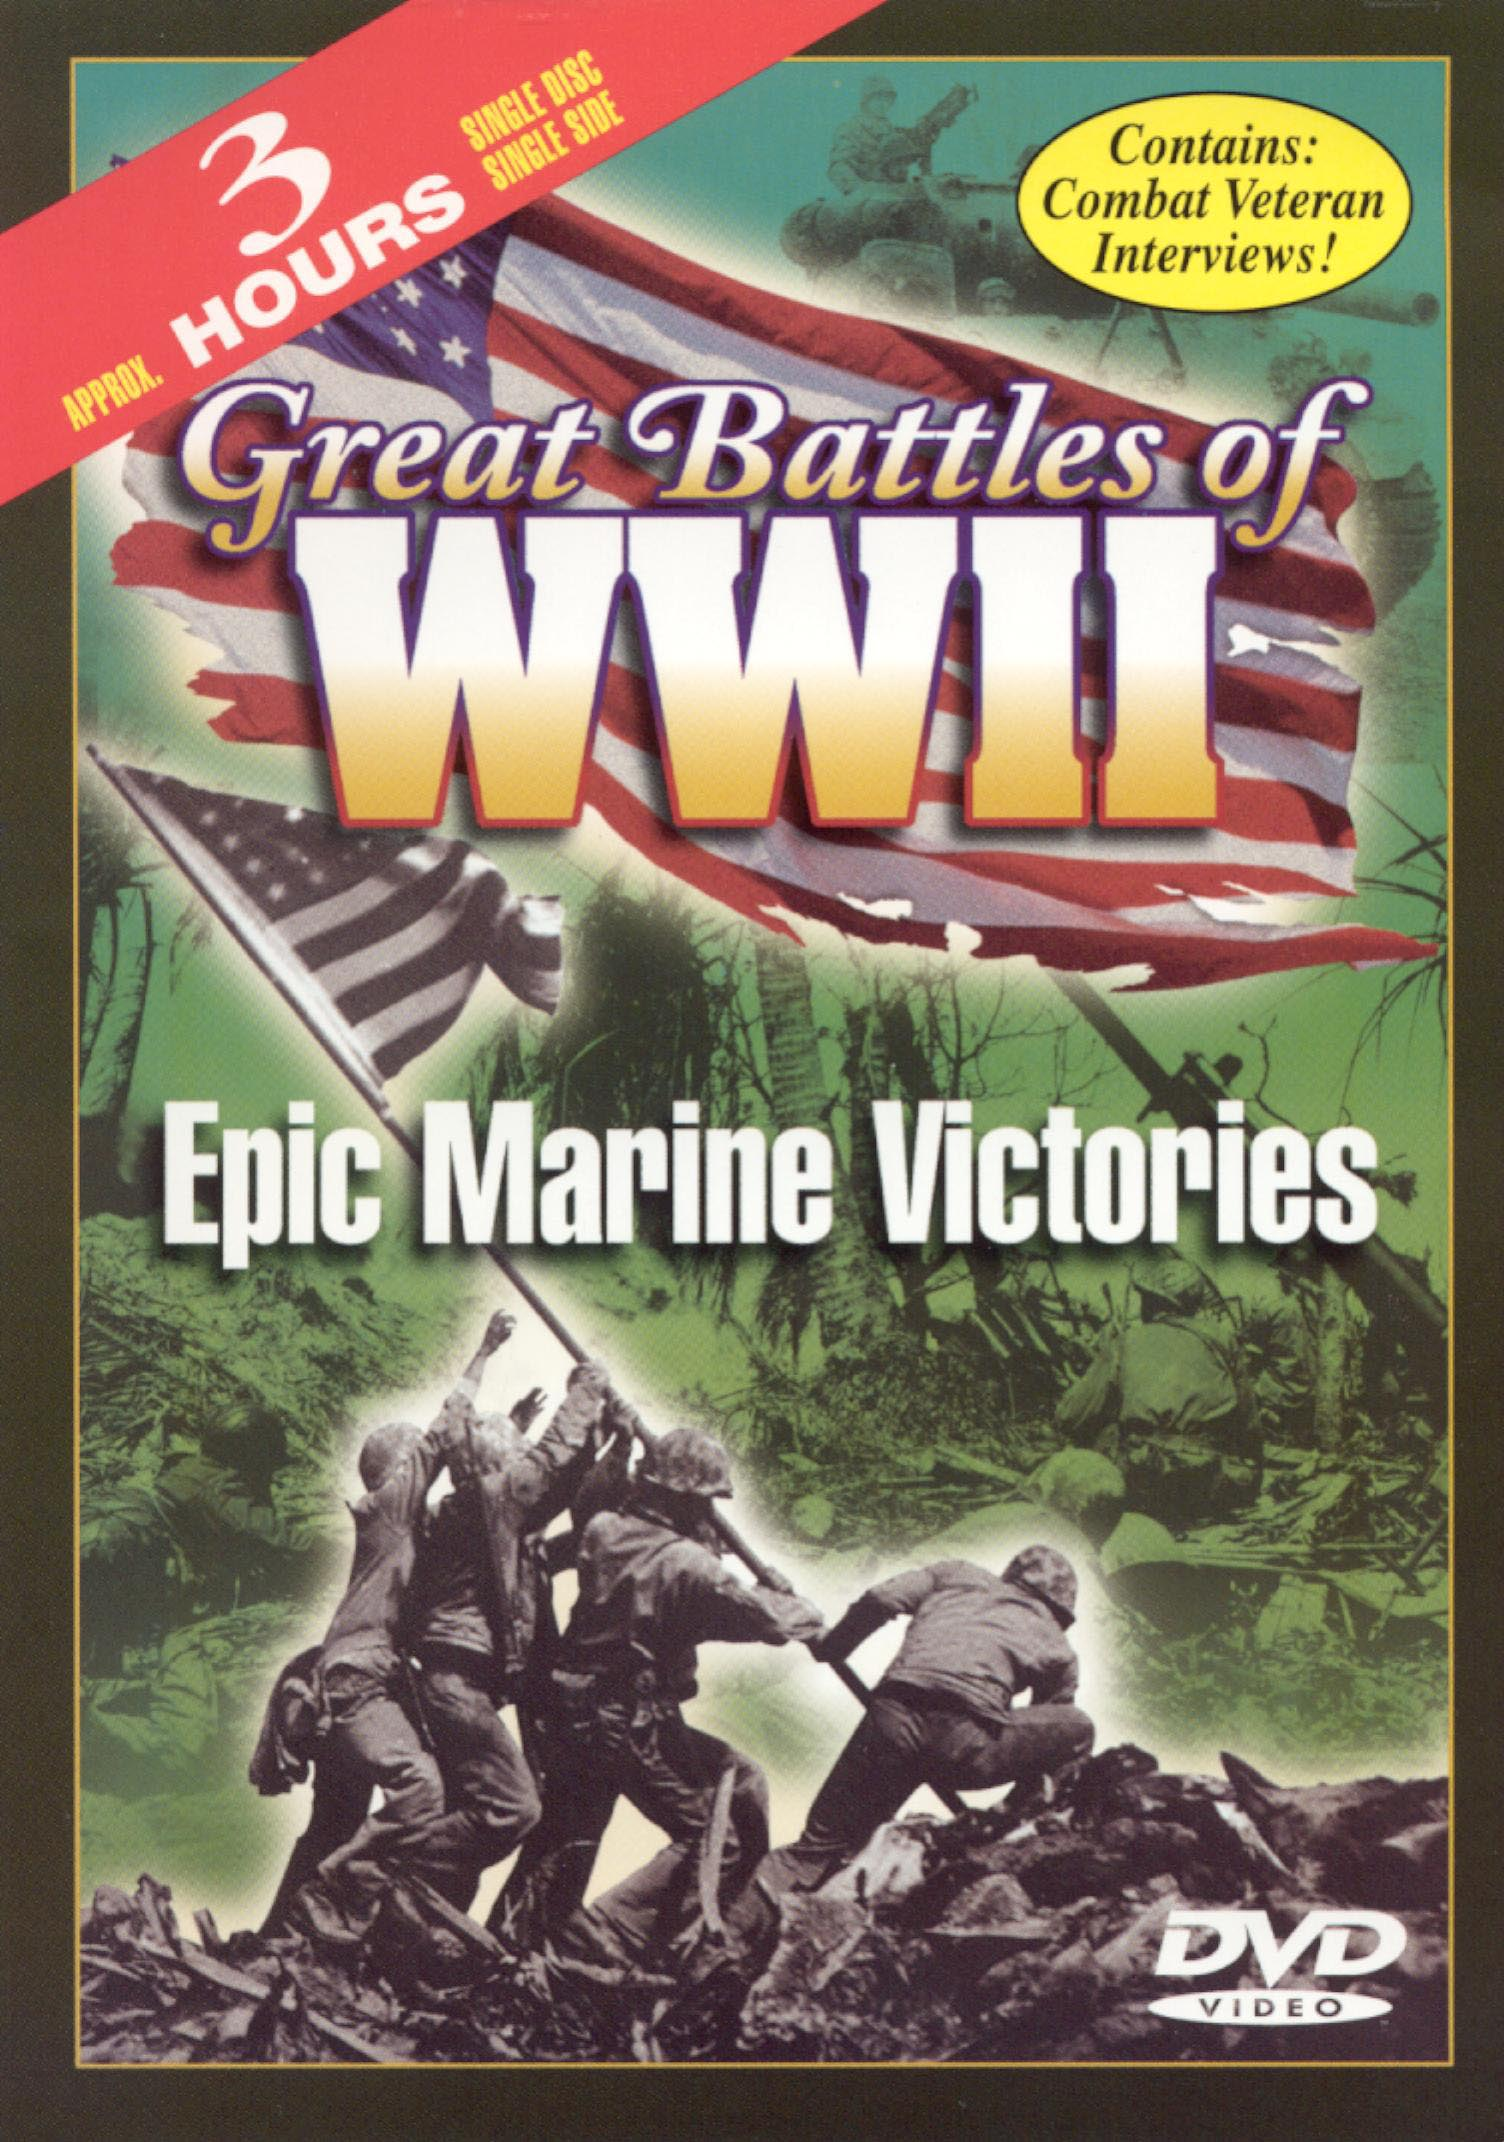 Great Battles of WWII: Epic Marine Victories